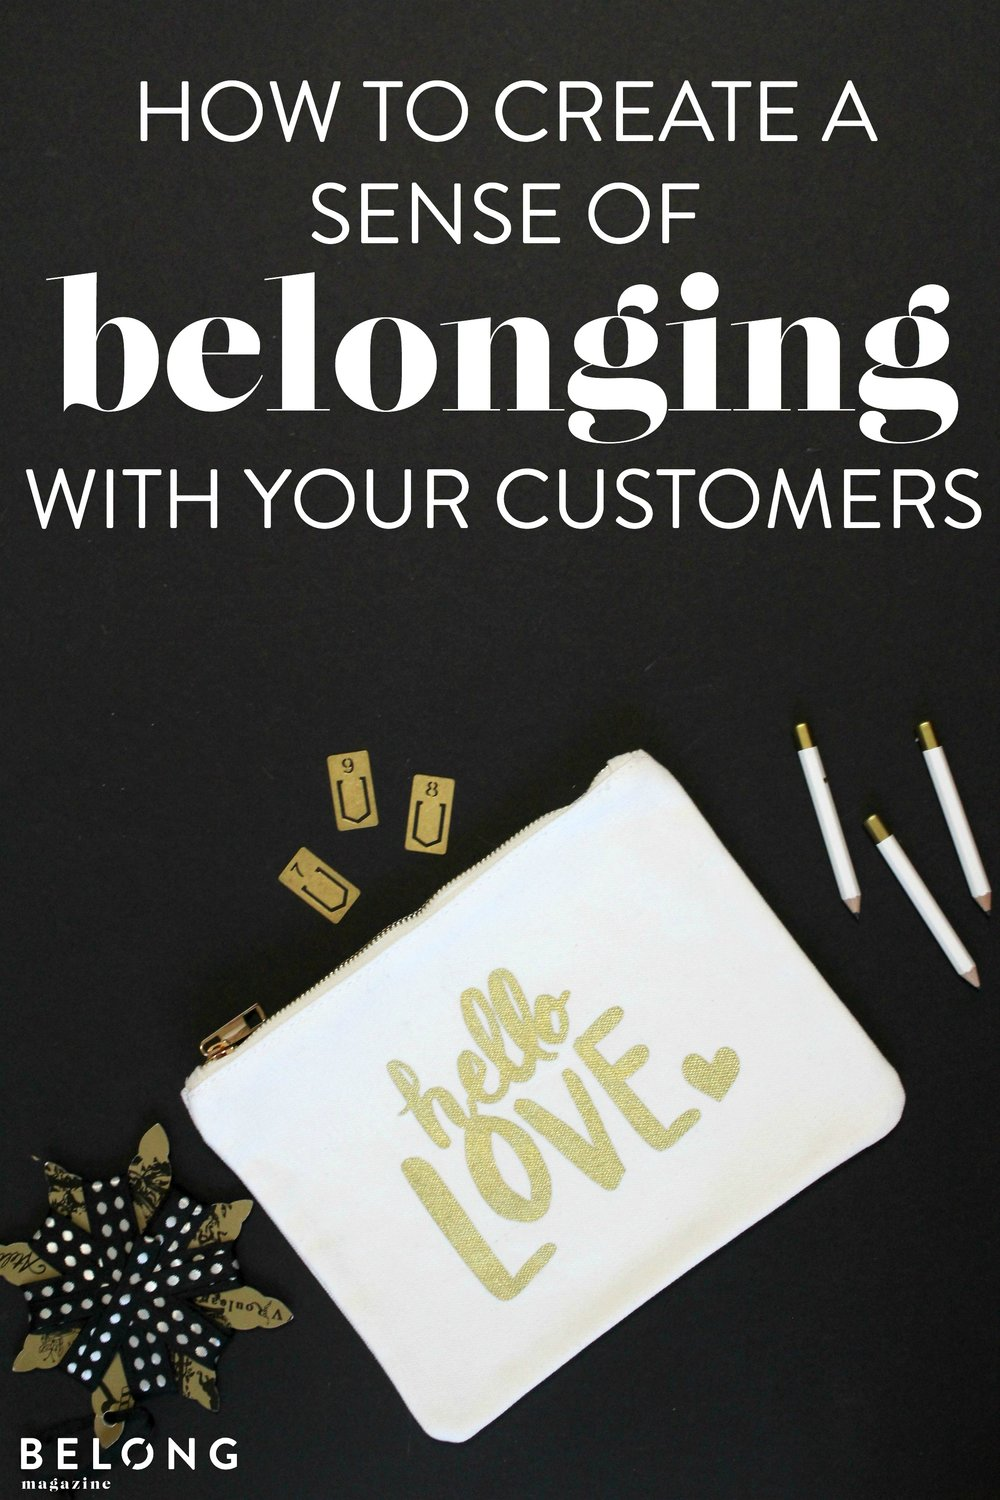 How to create a sense of belonging with your customers and clients for female entrepreneurs and creatives.